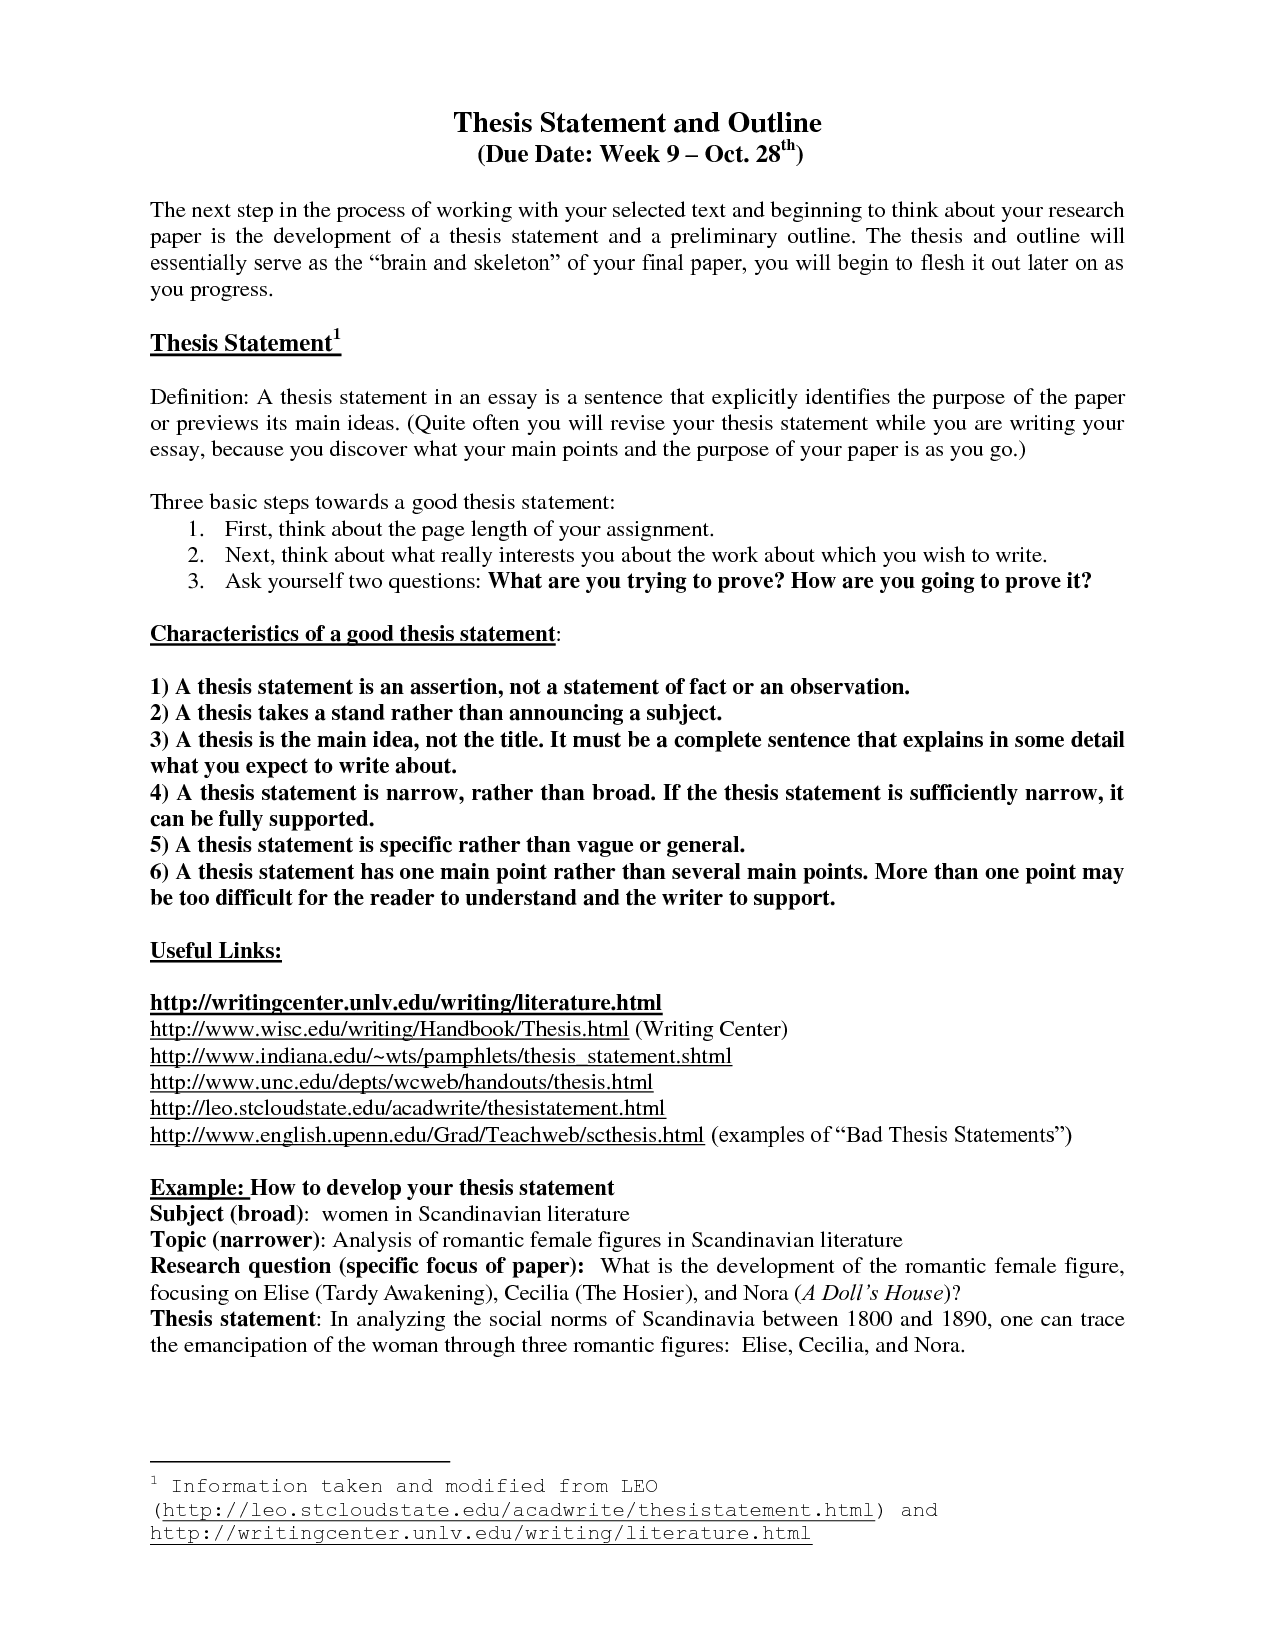 Private High School Admission Essay Examples Health And Social  Thesis Statement Outline Samples And Statements For Argumentative Thesis  Statement Outline Samples And Statements For Argumentative